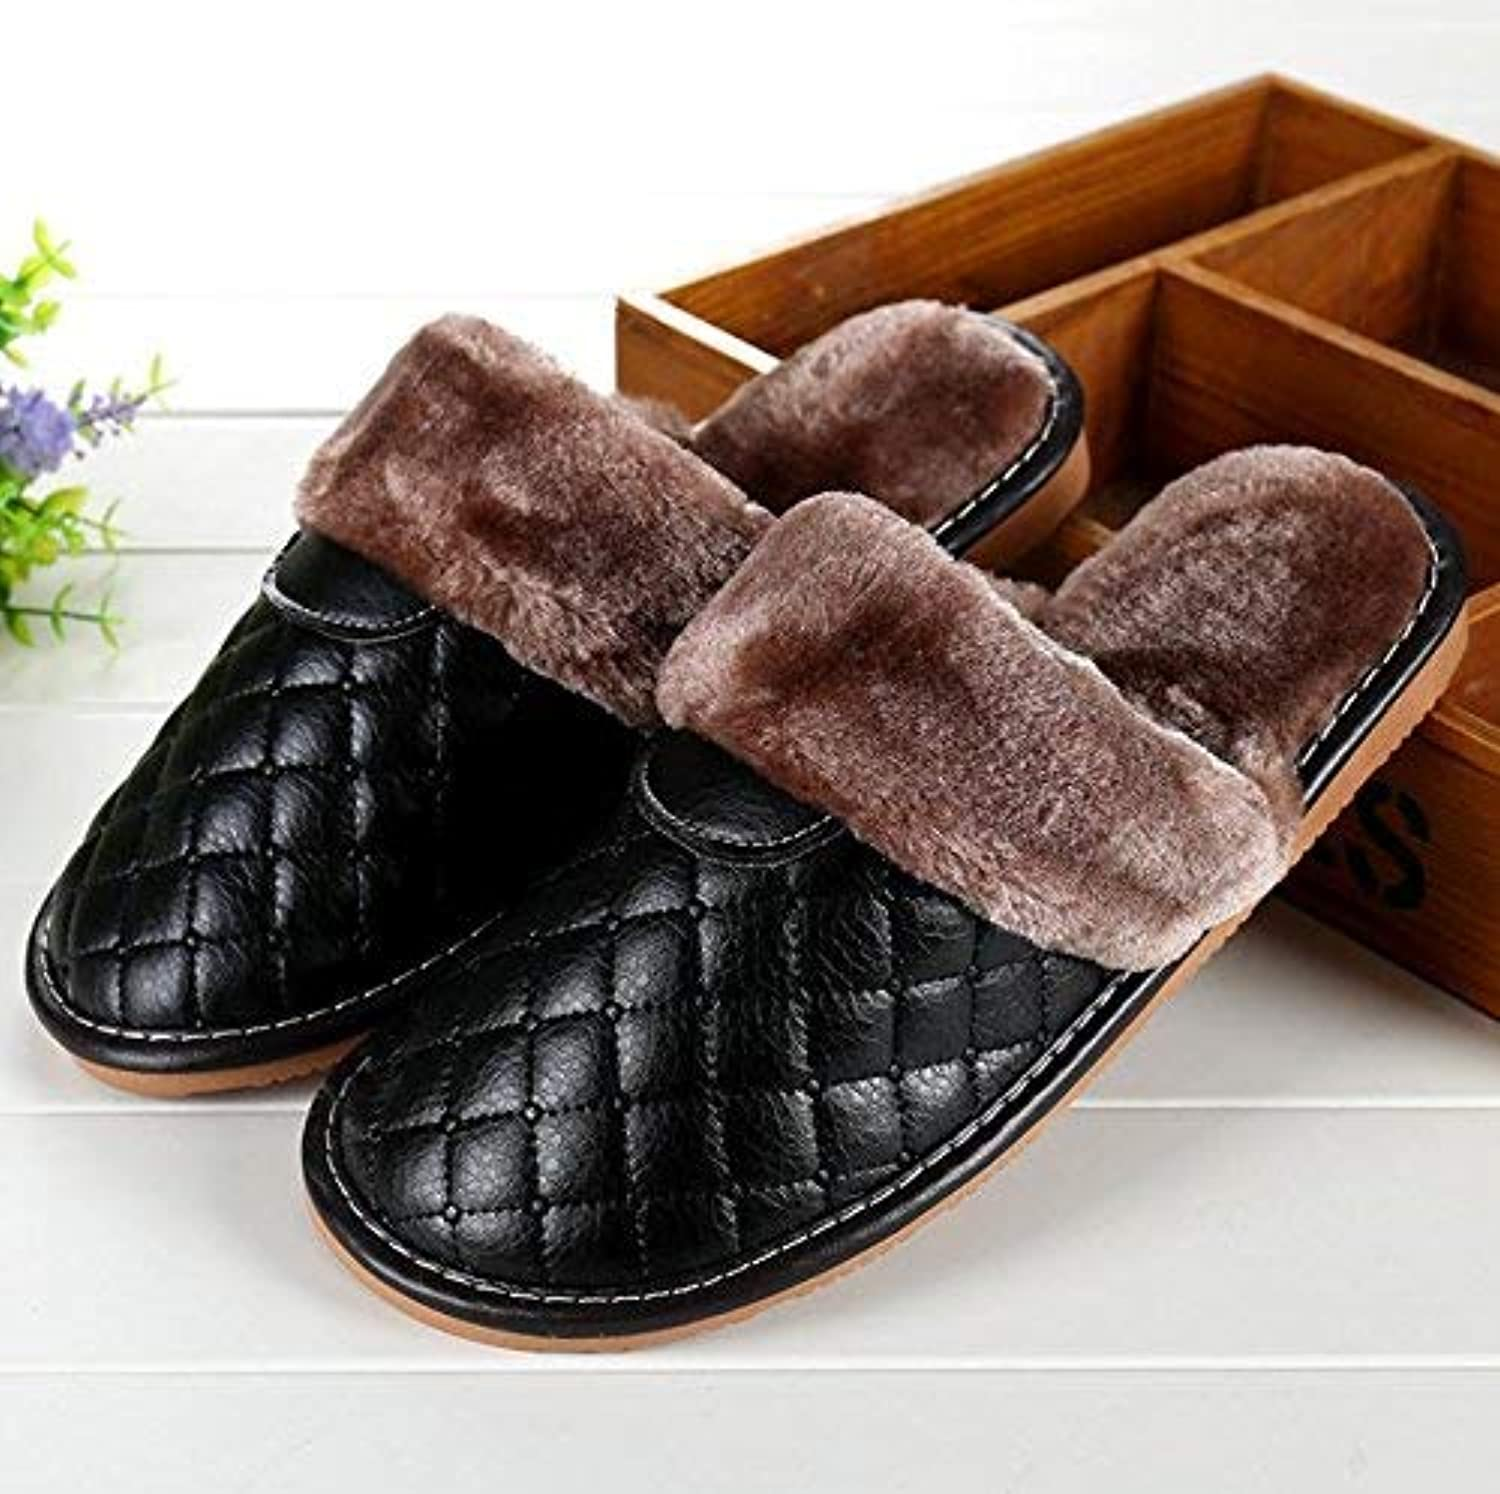 JaHGDU Men's Faux-Leather Slippers in Autumn and Winter Slippers Home Interior Keep Warm Brown Black Slippers